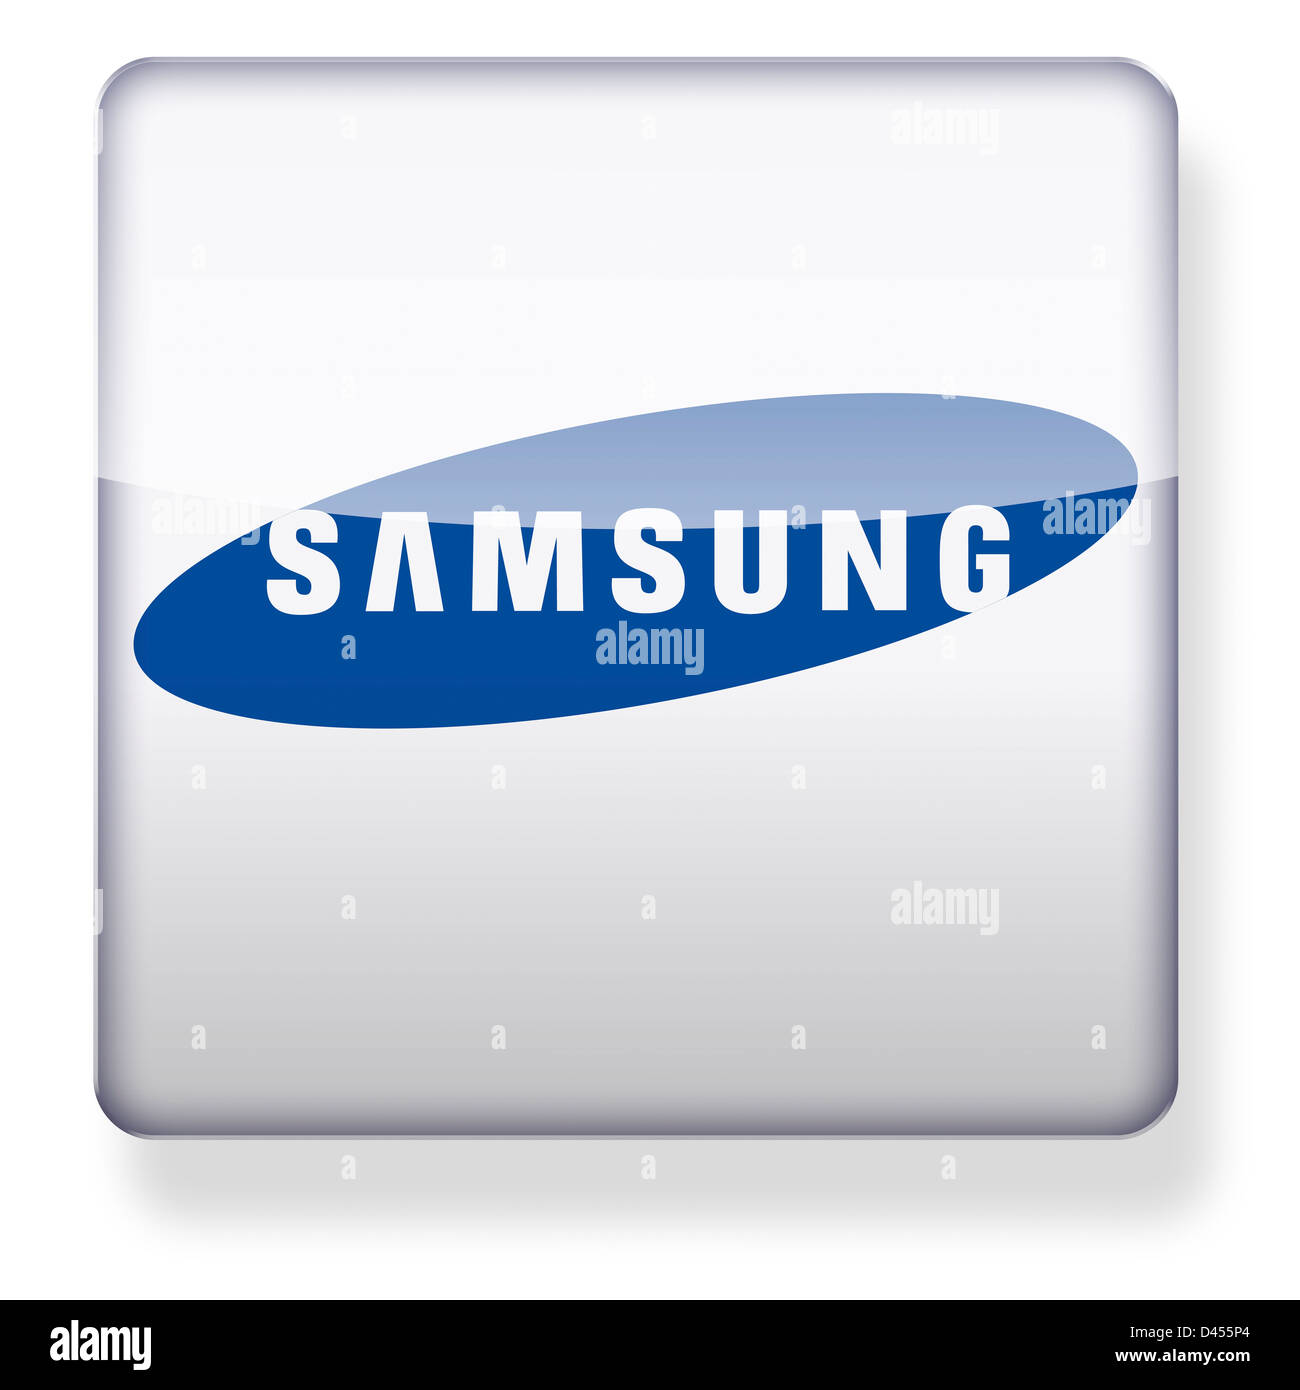 Samsung logo as an app icon. Clipping path included. - Stock Image